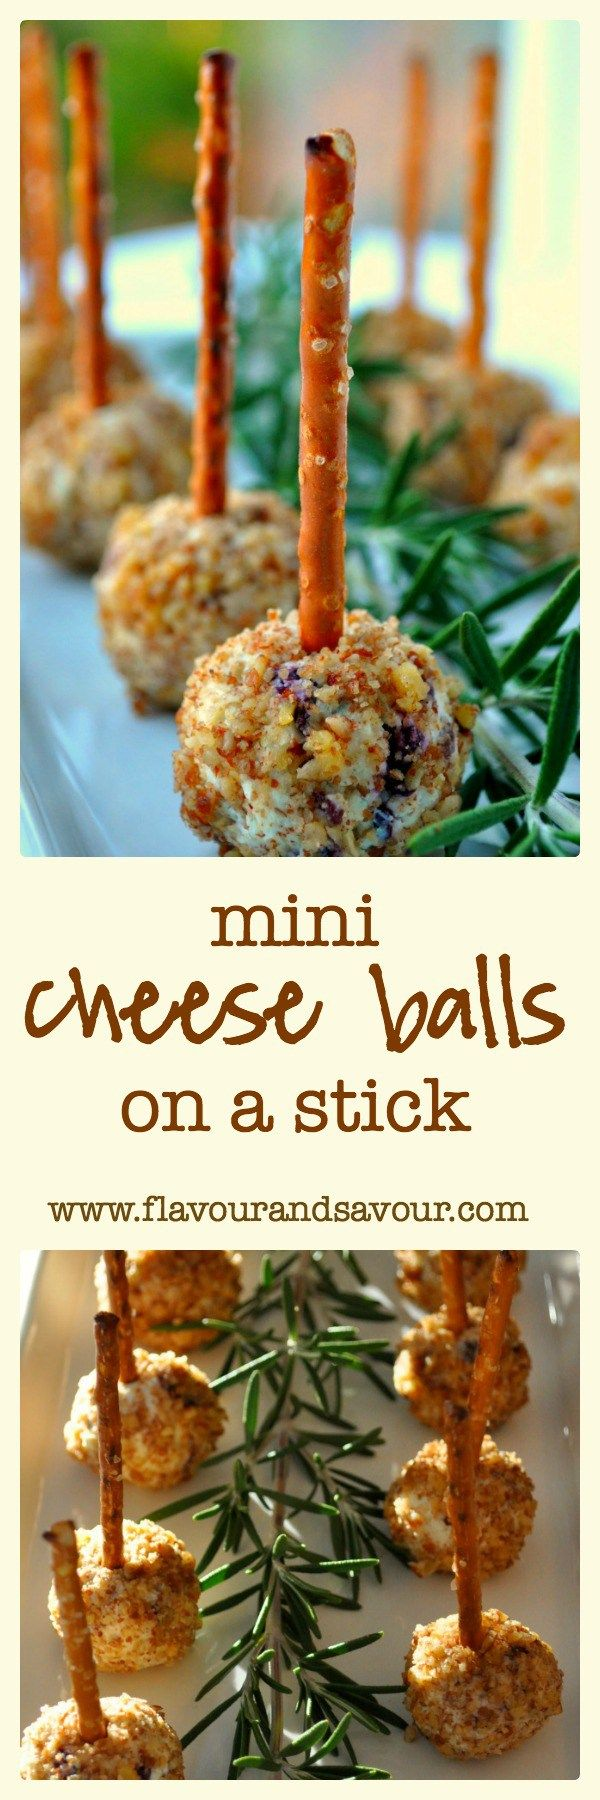 MIni Cheese Balls on a Stick! Fun finger food from Flavour and Savour